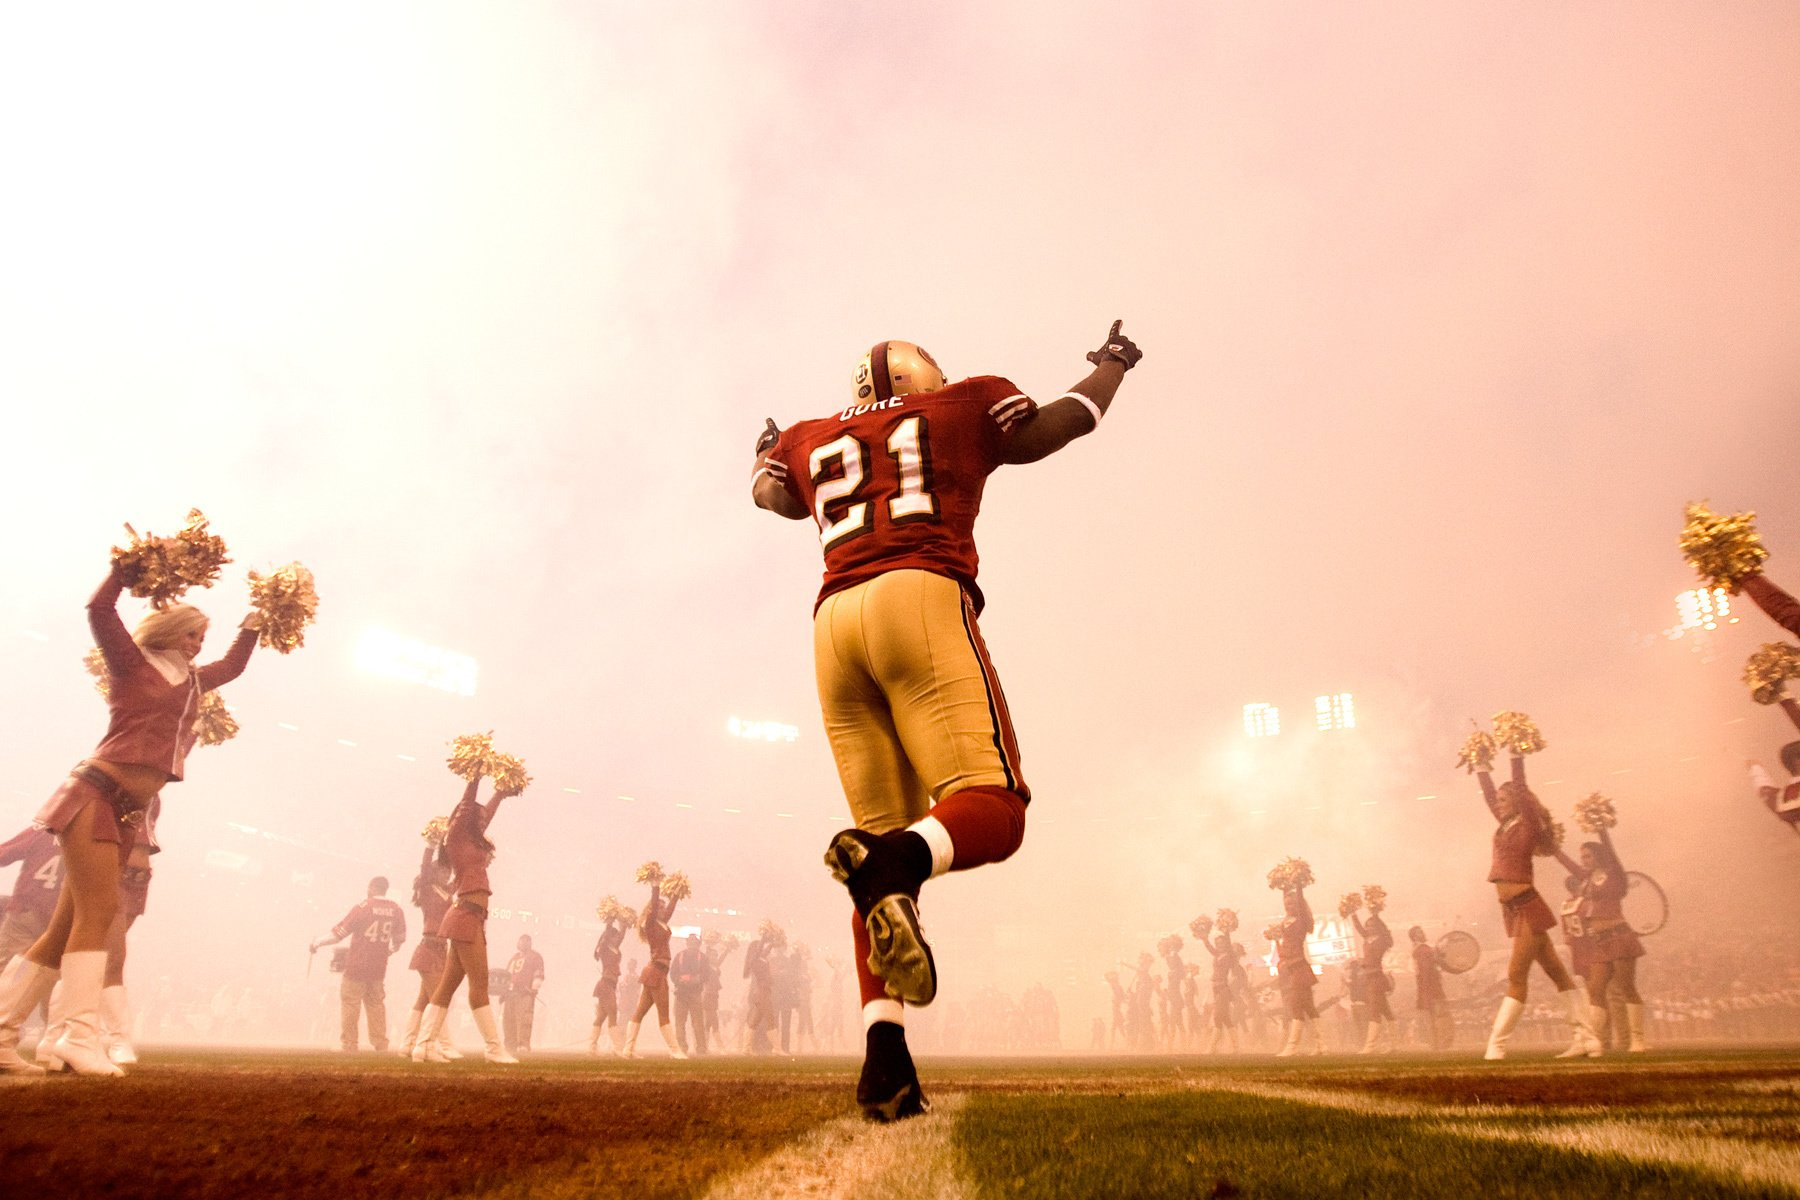 Happy birthday to one of my biggest idols in football. Happy birthday legend. Happy birthday Frank Gore.